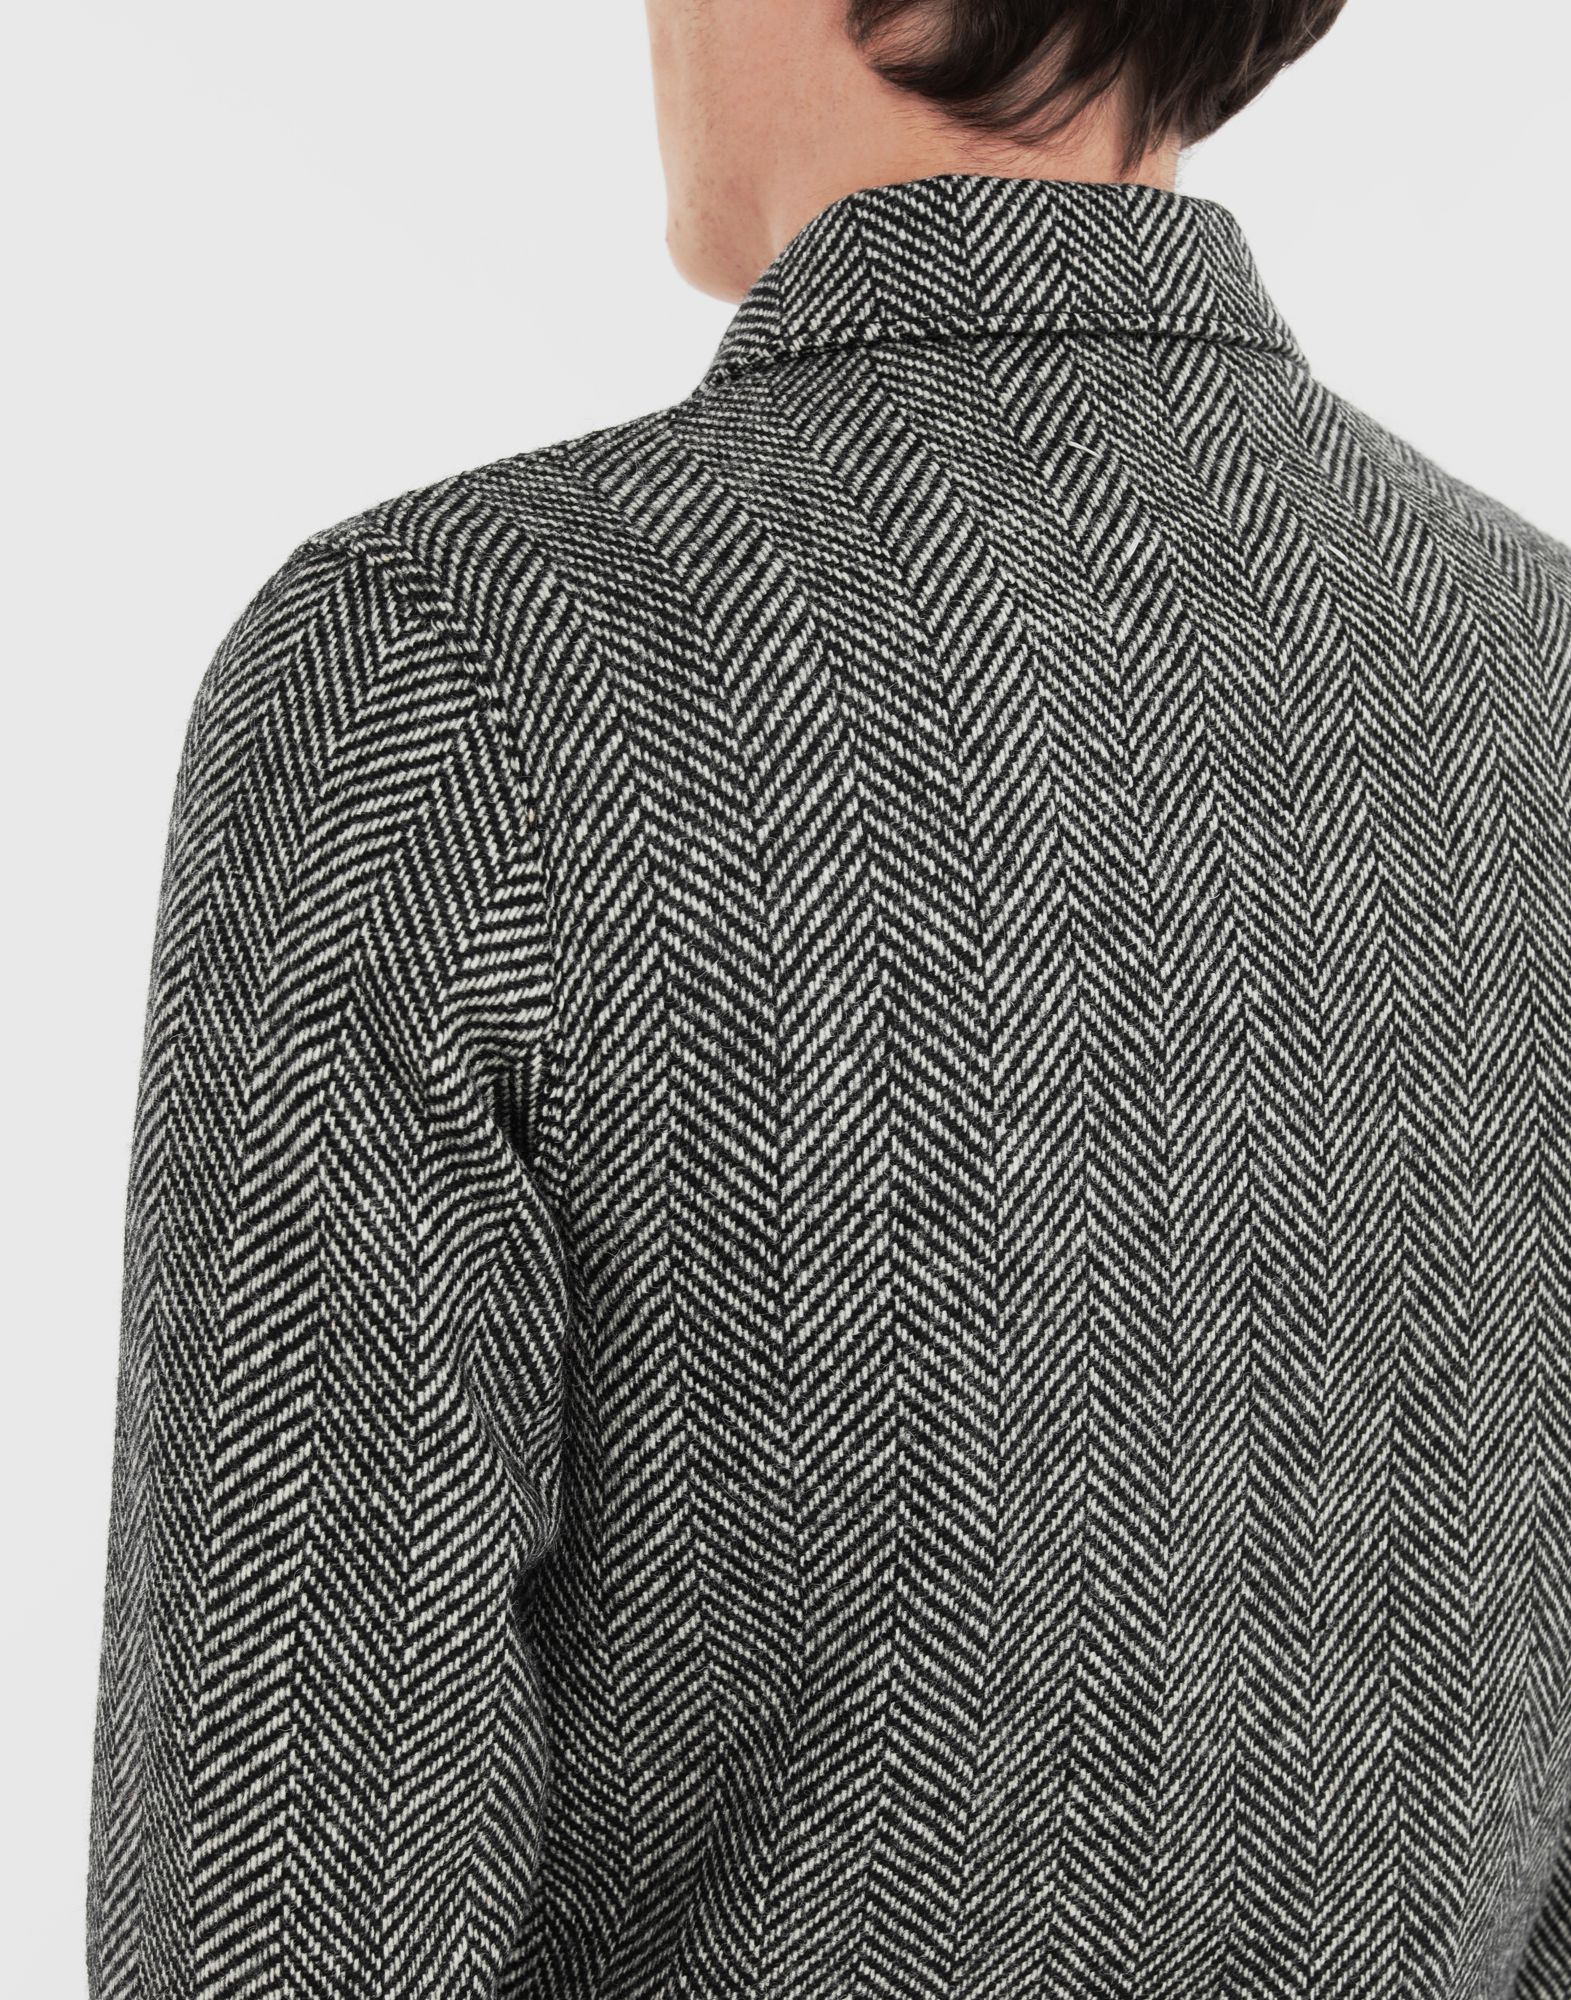 MAISON MARGIELA Décortiqué herringbone jacket Light jacket Man b